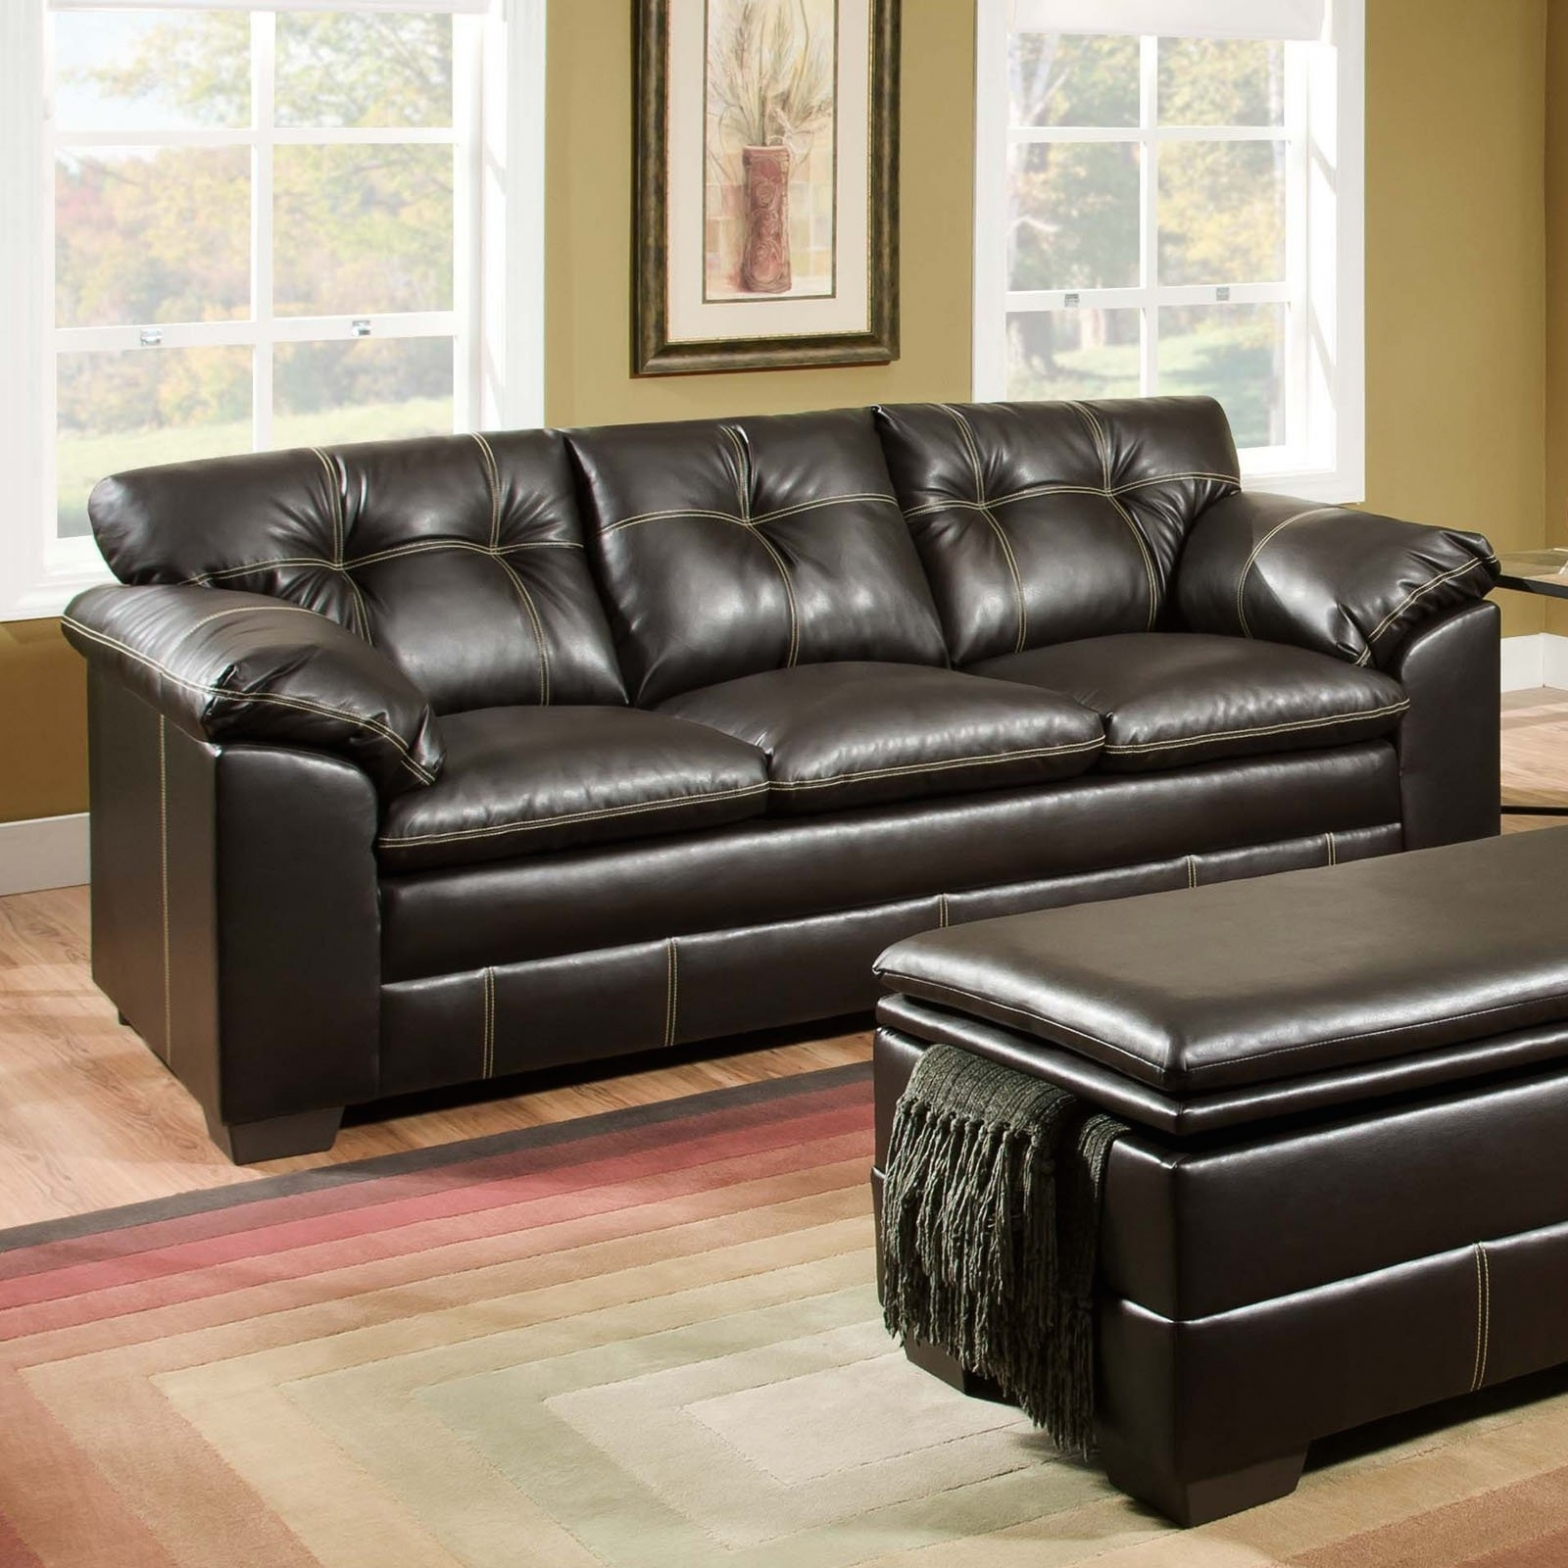 Sectional Sofas At Big Lots In Newest Furniture: Sofas : Fabulous Leather Loveseat Recliner Sectional (View 11 of 15)